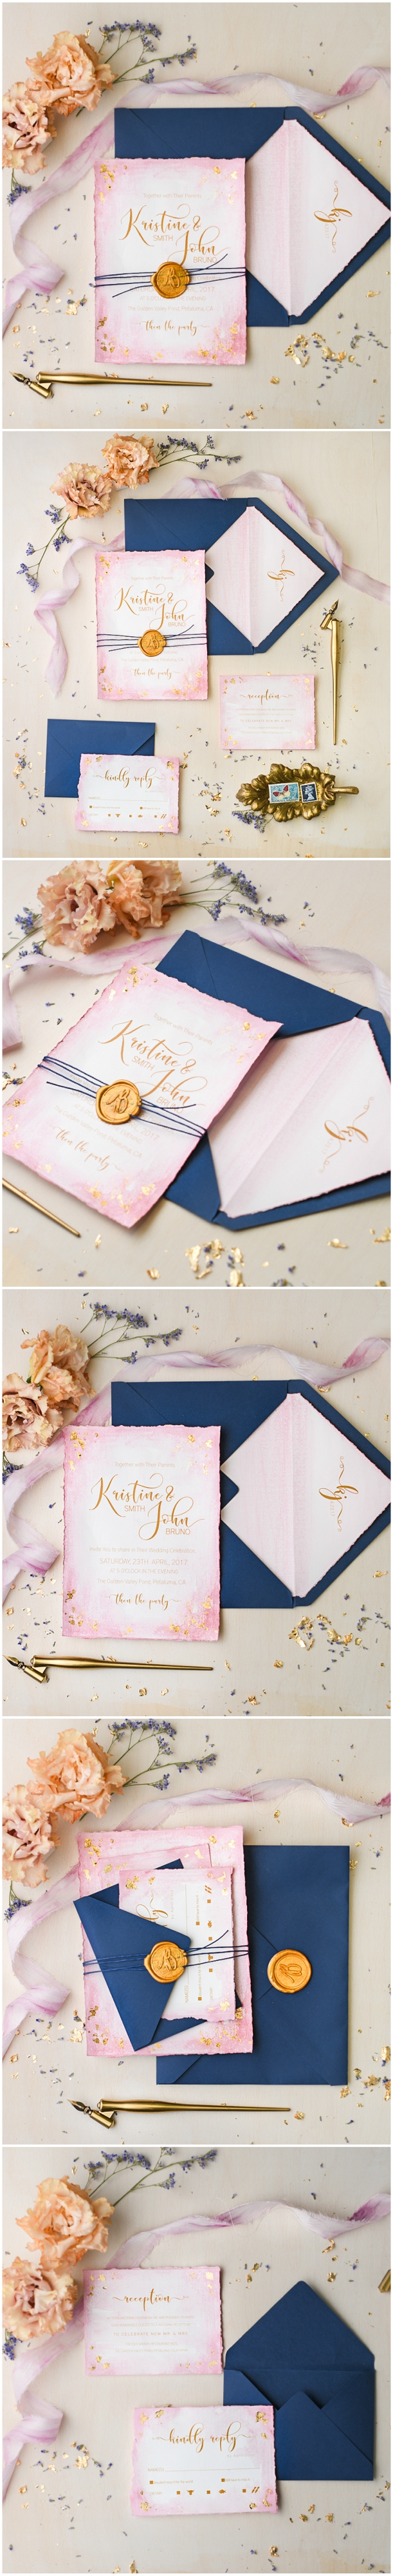 Pink Navy Gold Hand Painted Wedding Invitations handmade pink